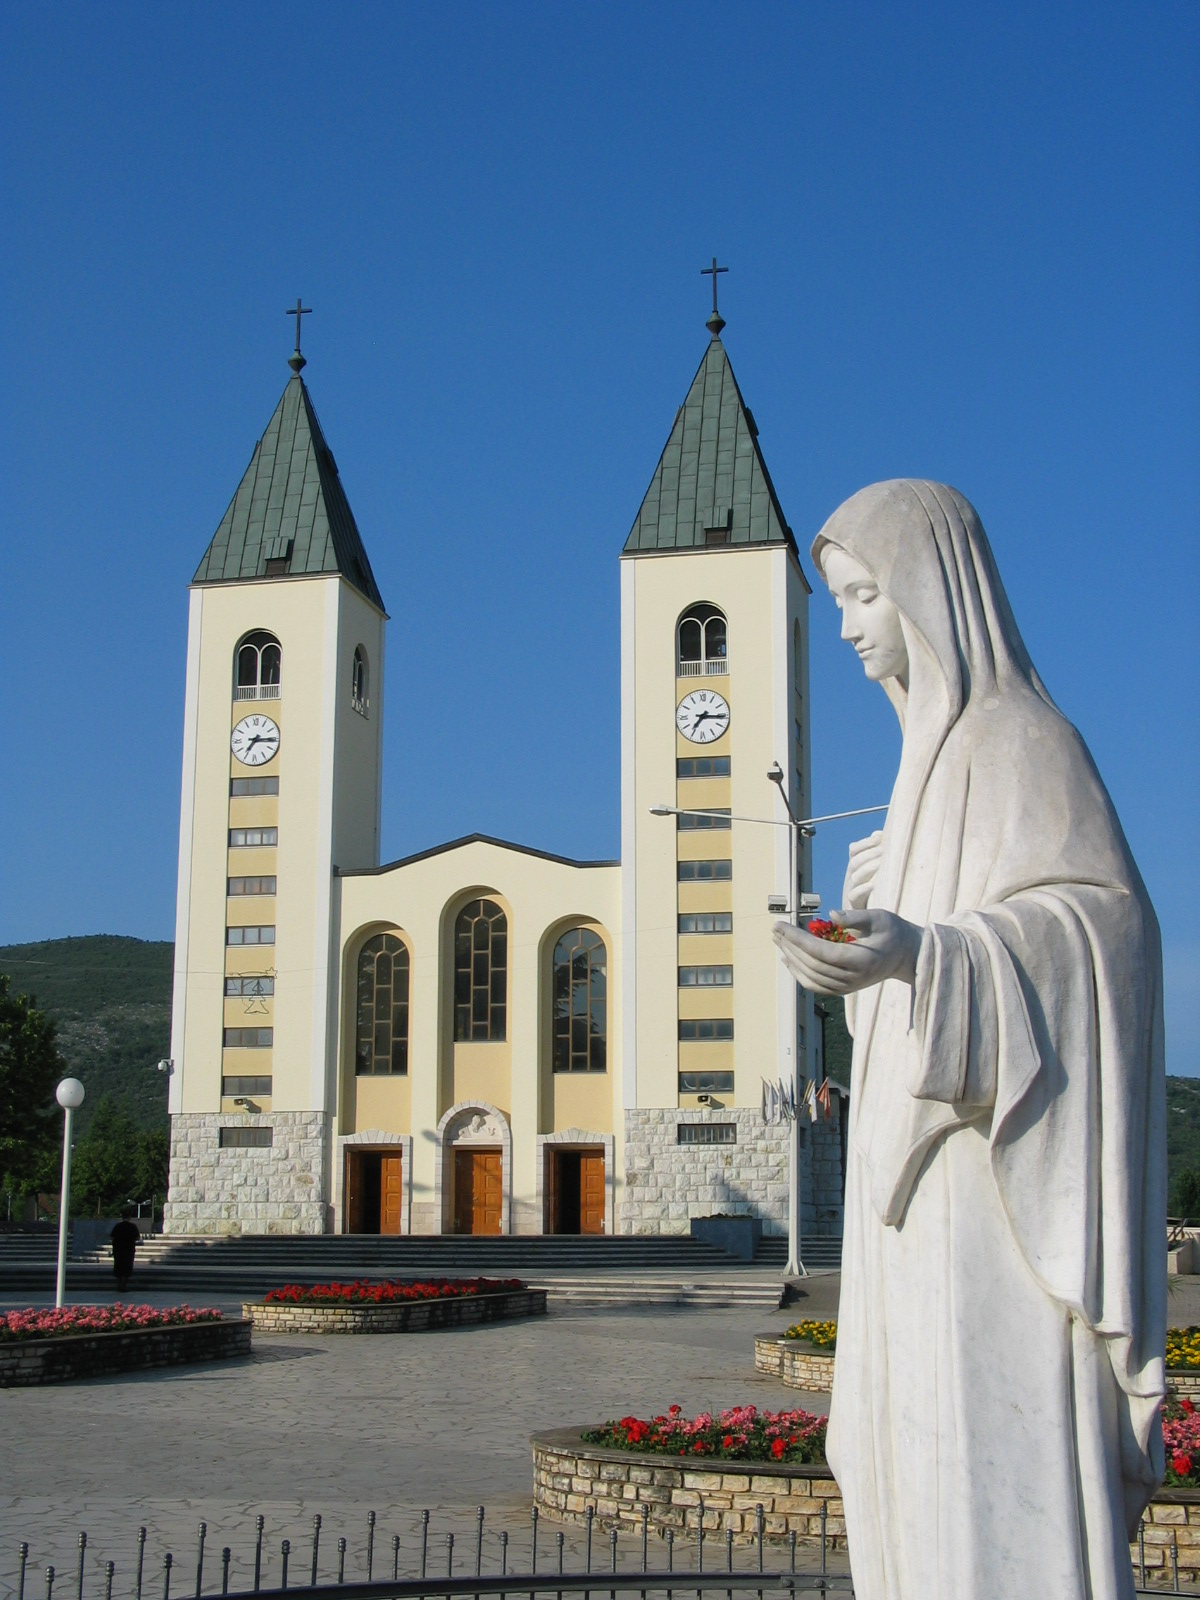 Pope Authorizes Pilgrimages to Medjugorje